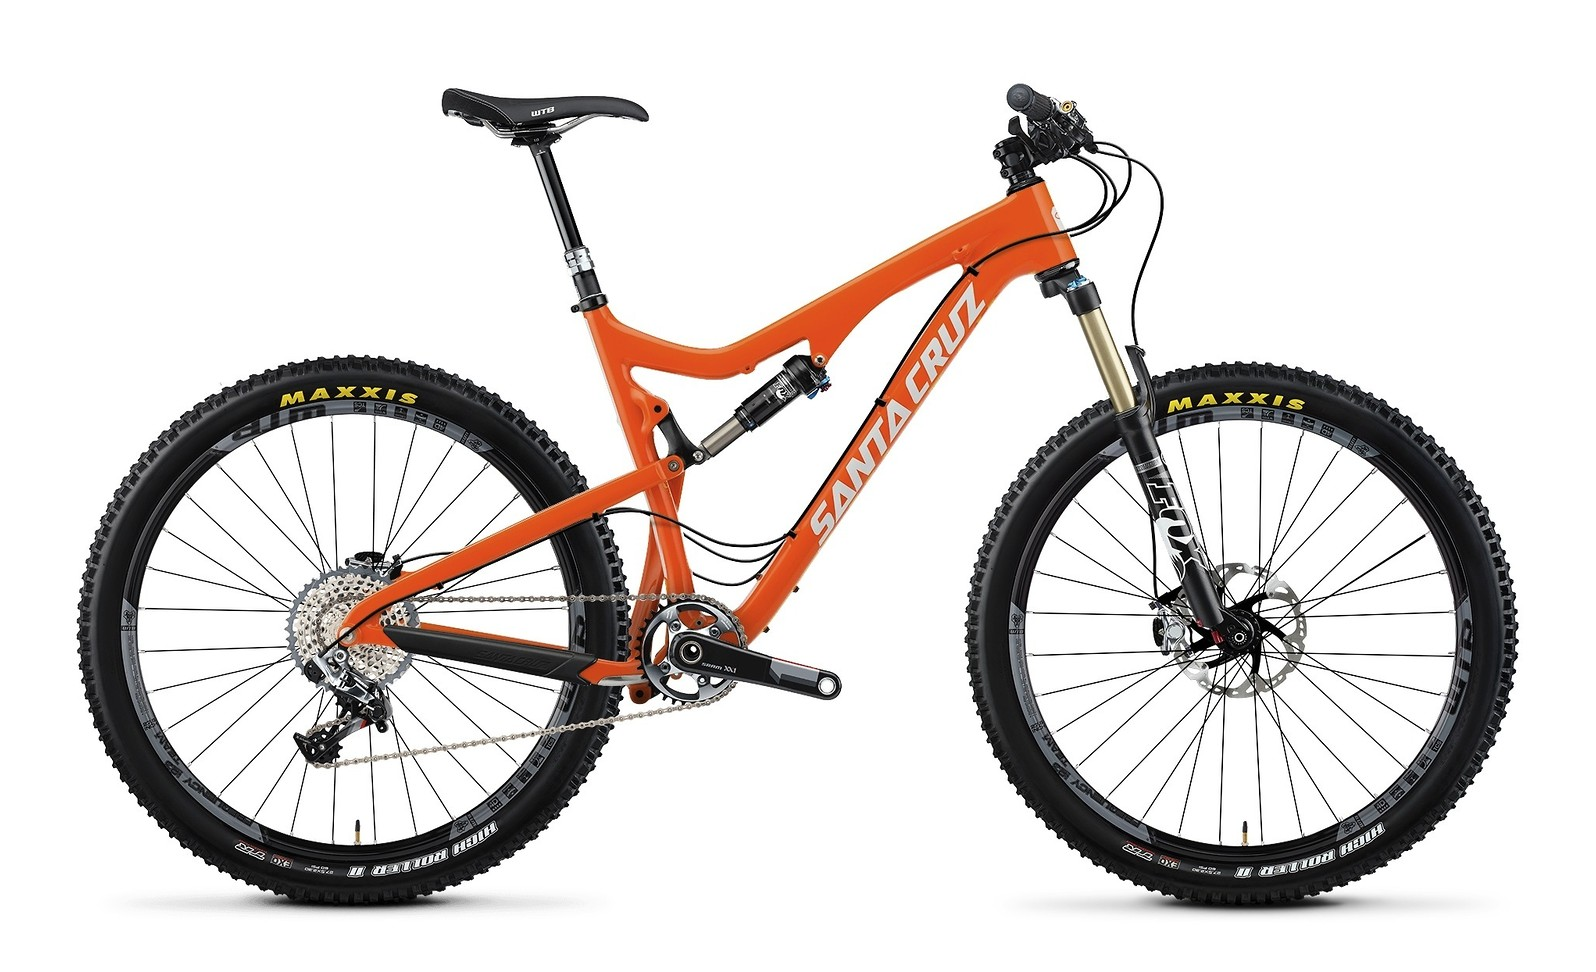 2014 Santa Cruz 5010 Carbon XX1 AM 27.5  2014 Santa Cruz 5010 Carbon XX1 AM 27.5 - orange